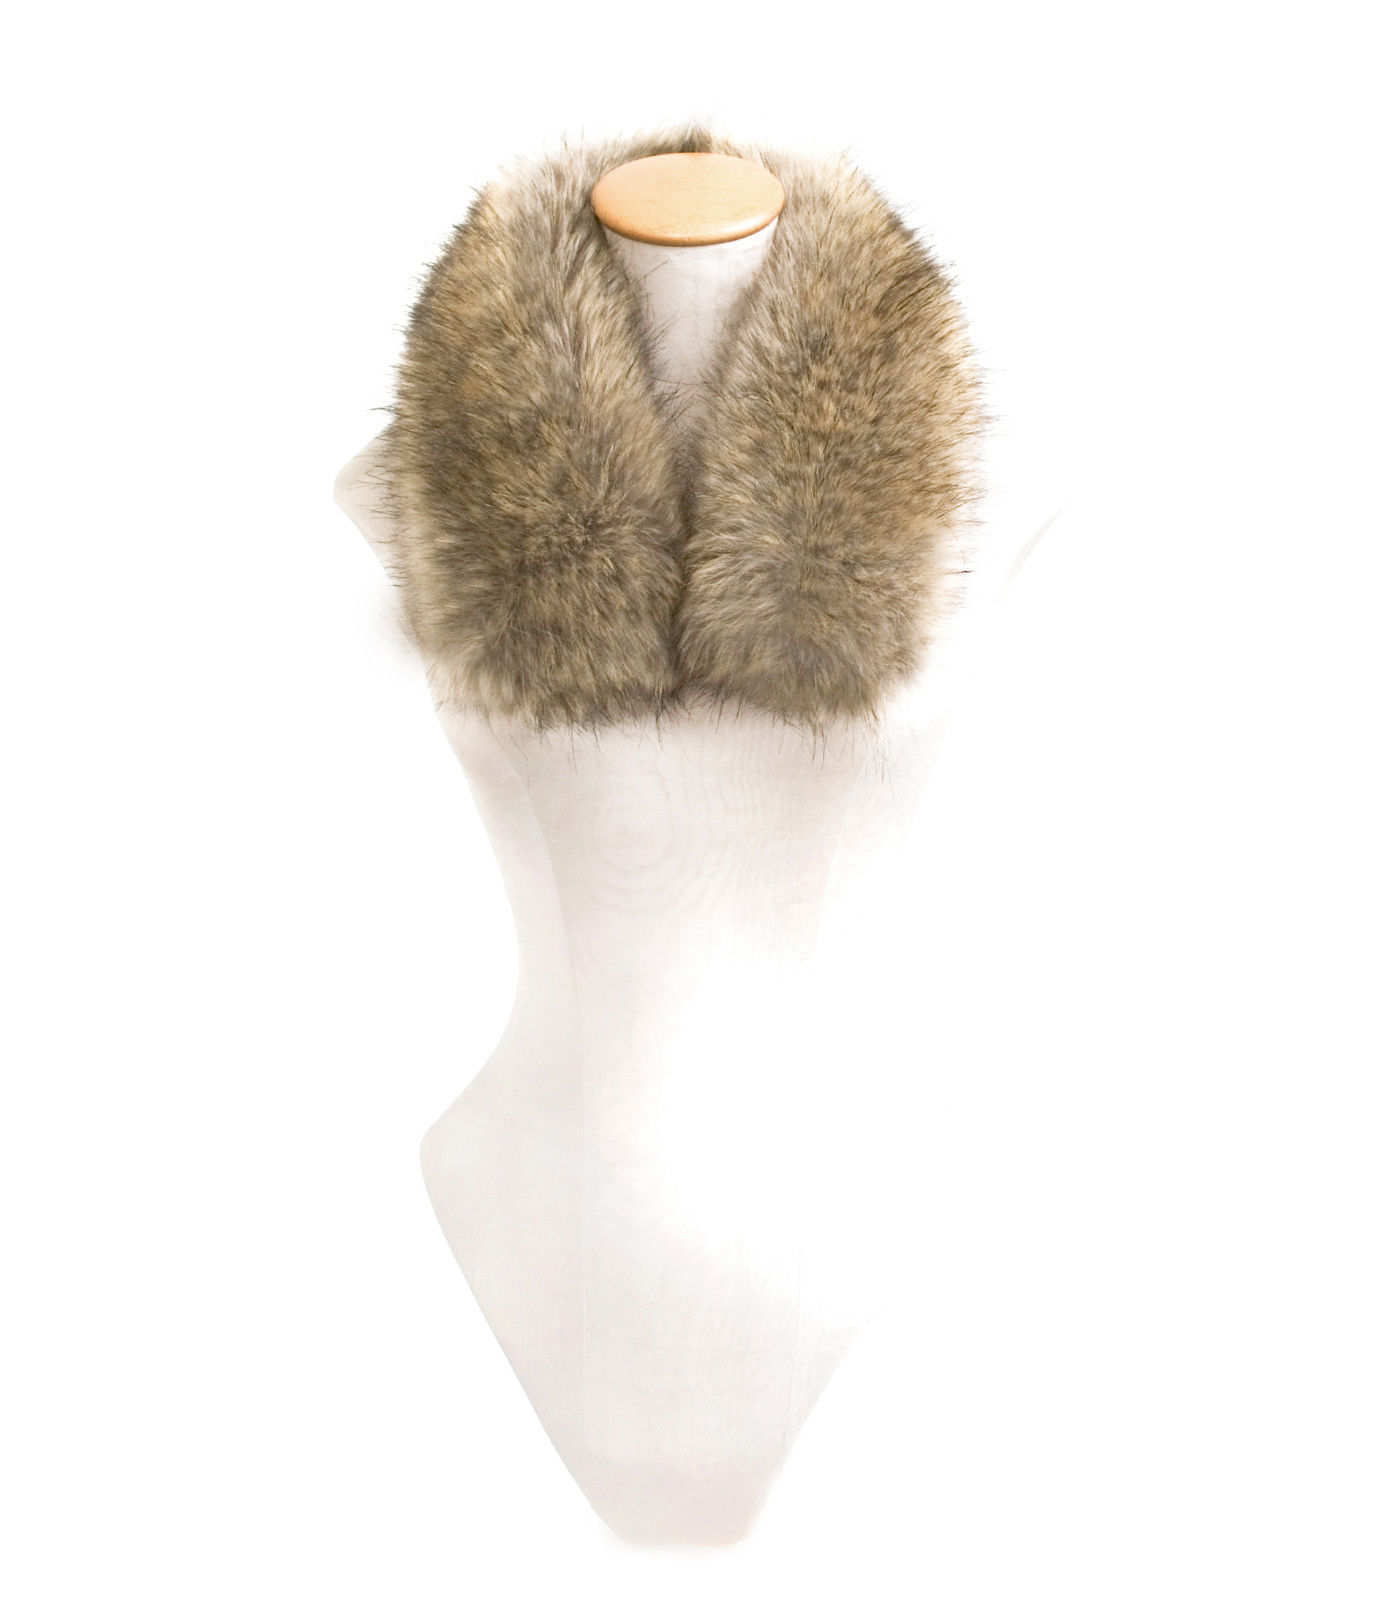 PELZKRAGEN,FELLKRAGEN,KRAGEN,FELL, PELZ,IMITATION,IMITAT, COLLAR FAUX FAKE FUR